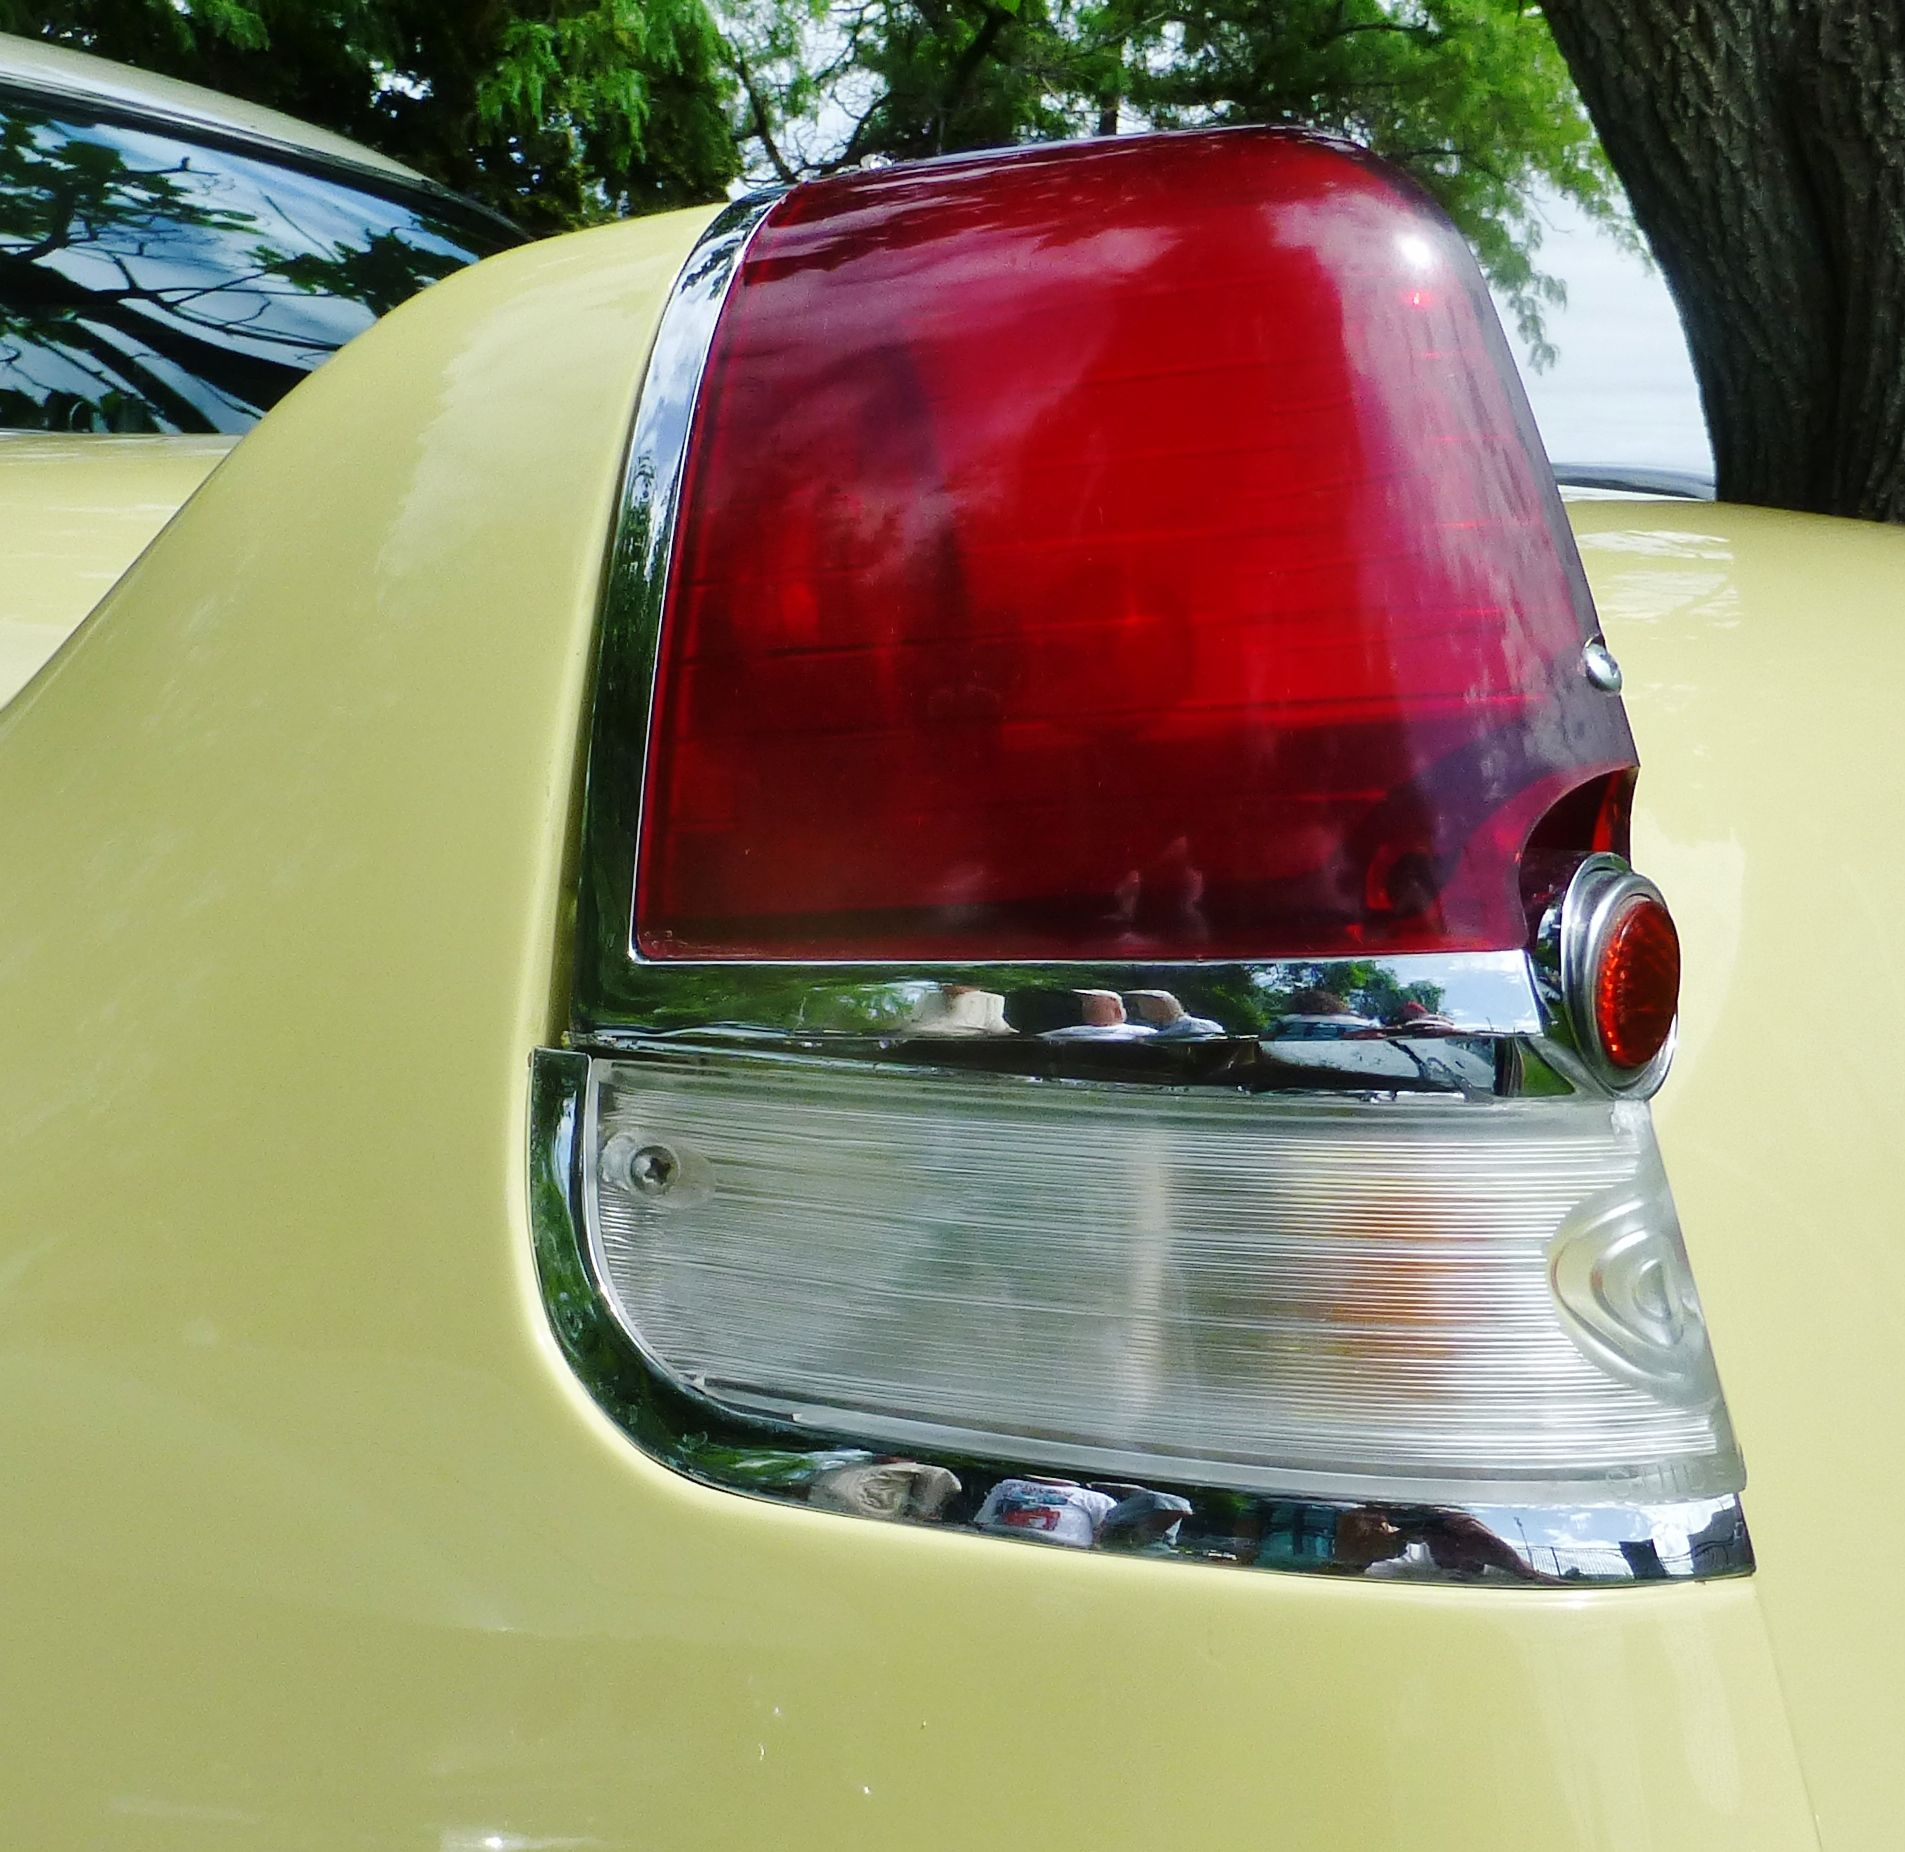 1955 Cadillac Coupe Deville Tail Fin Photography By David E Nelson 2017